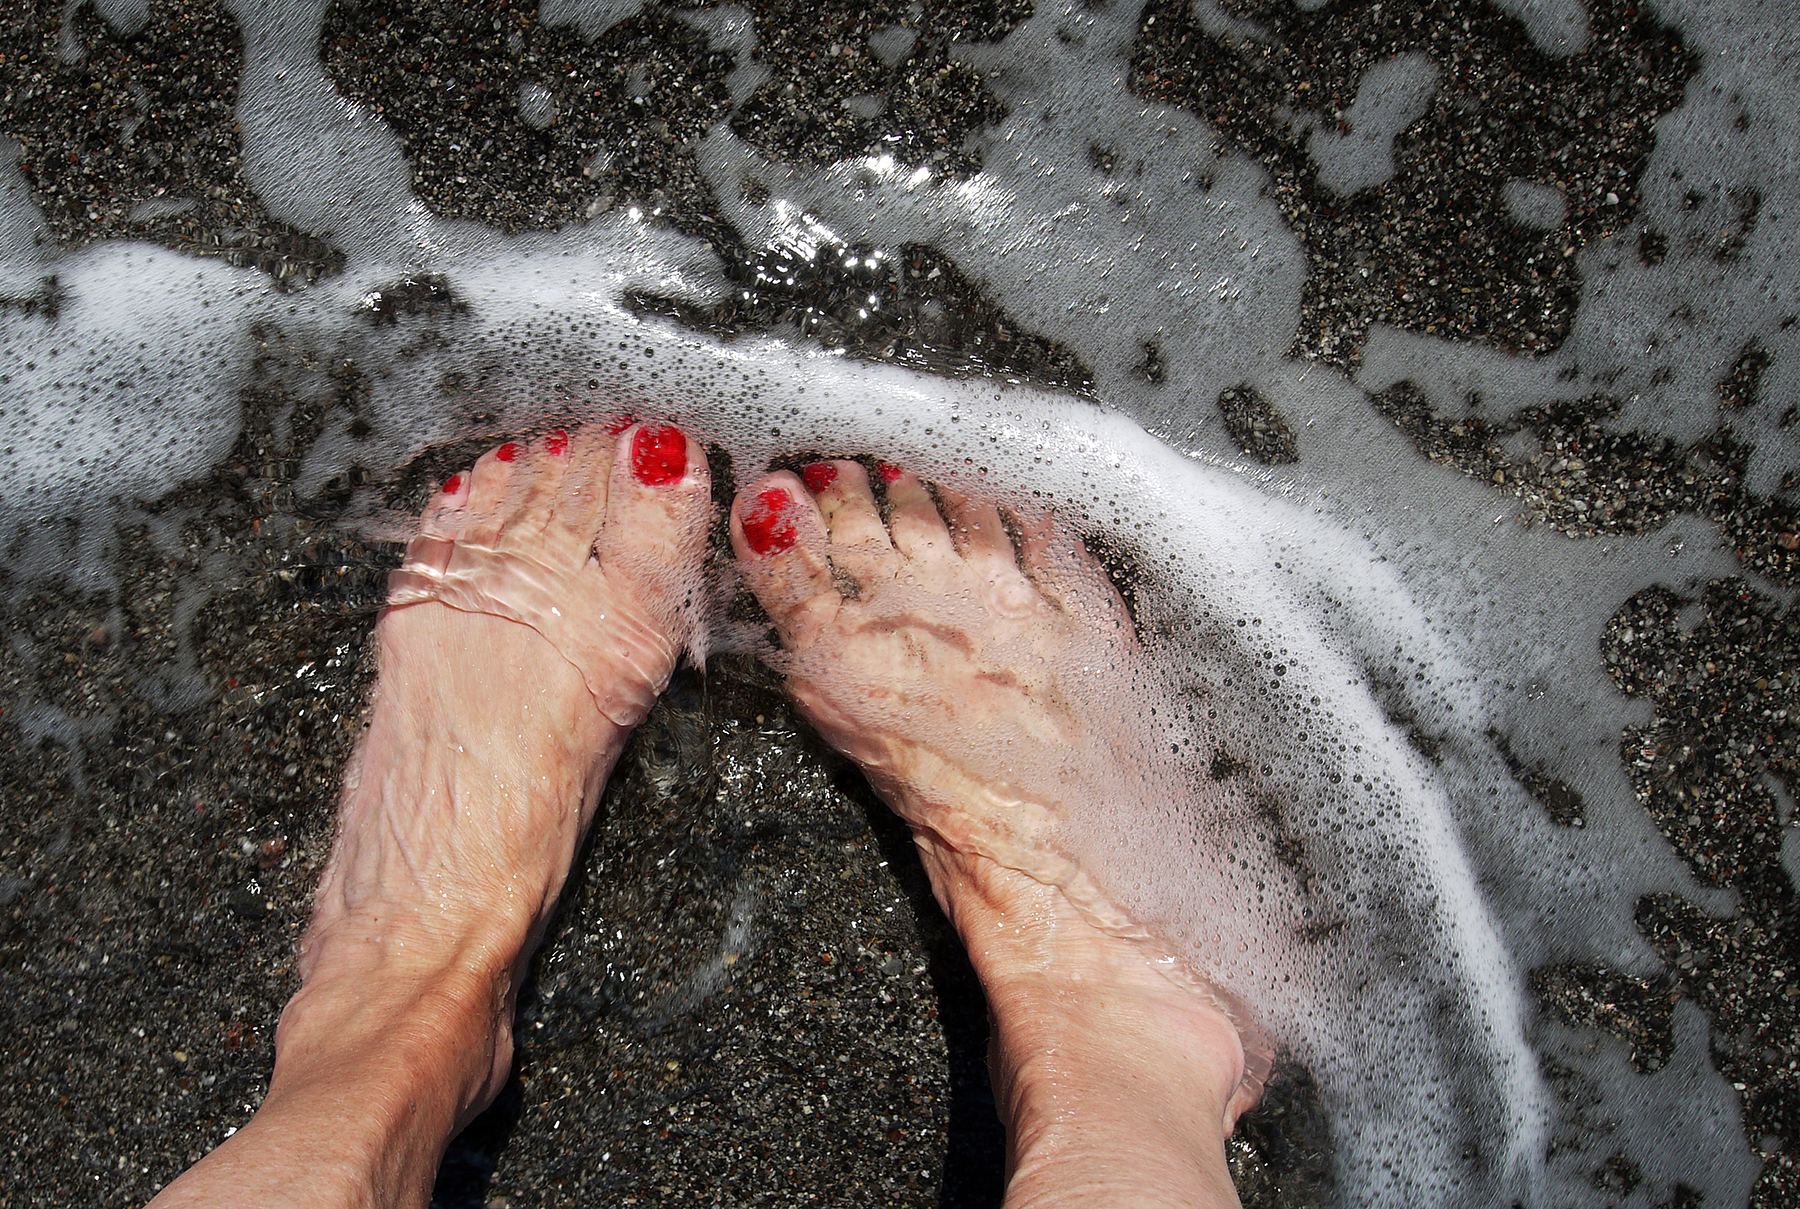 Feet in water at black sand beach